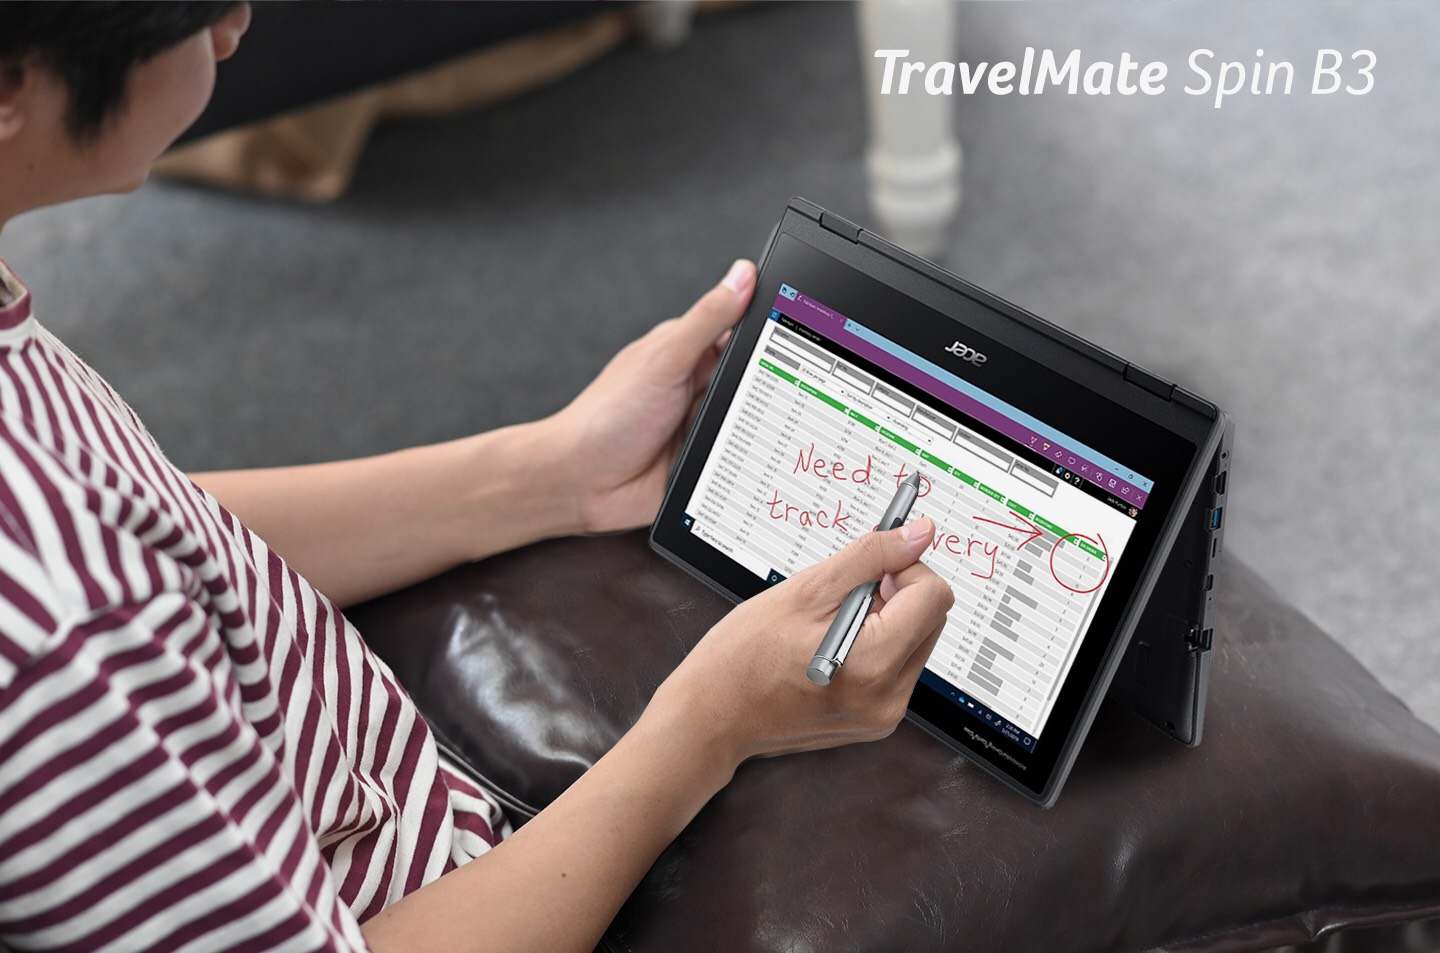 Acer-TravelMate-Spin-B3-image